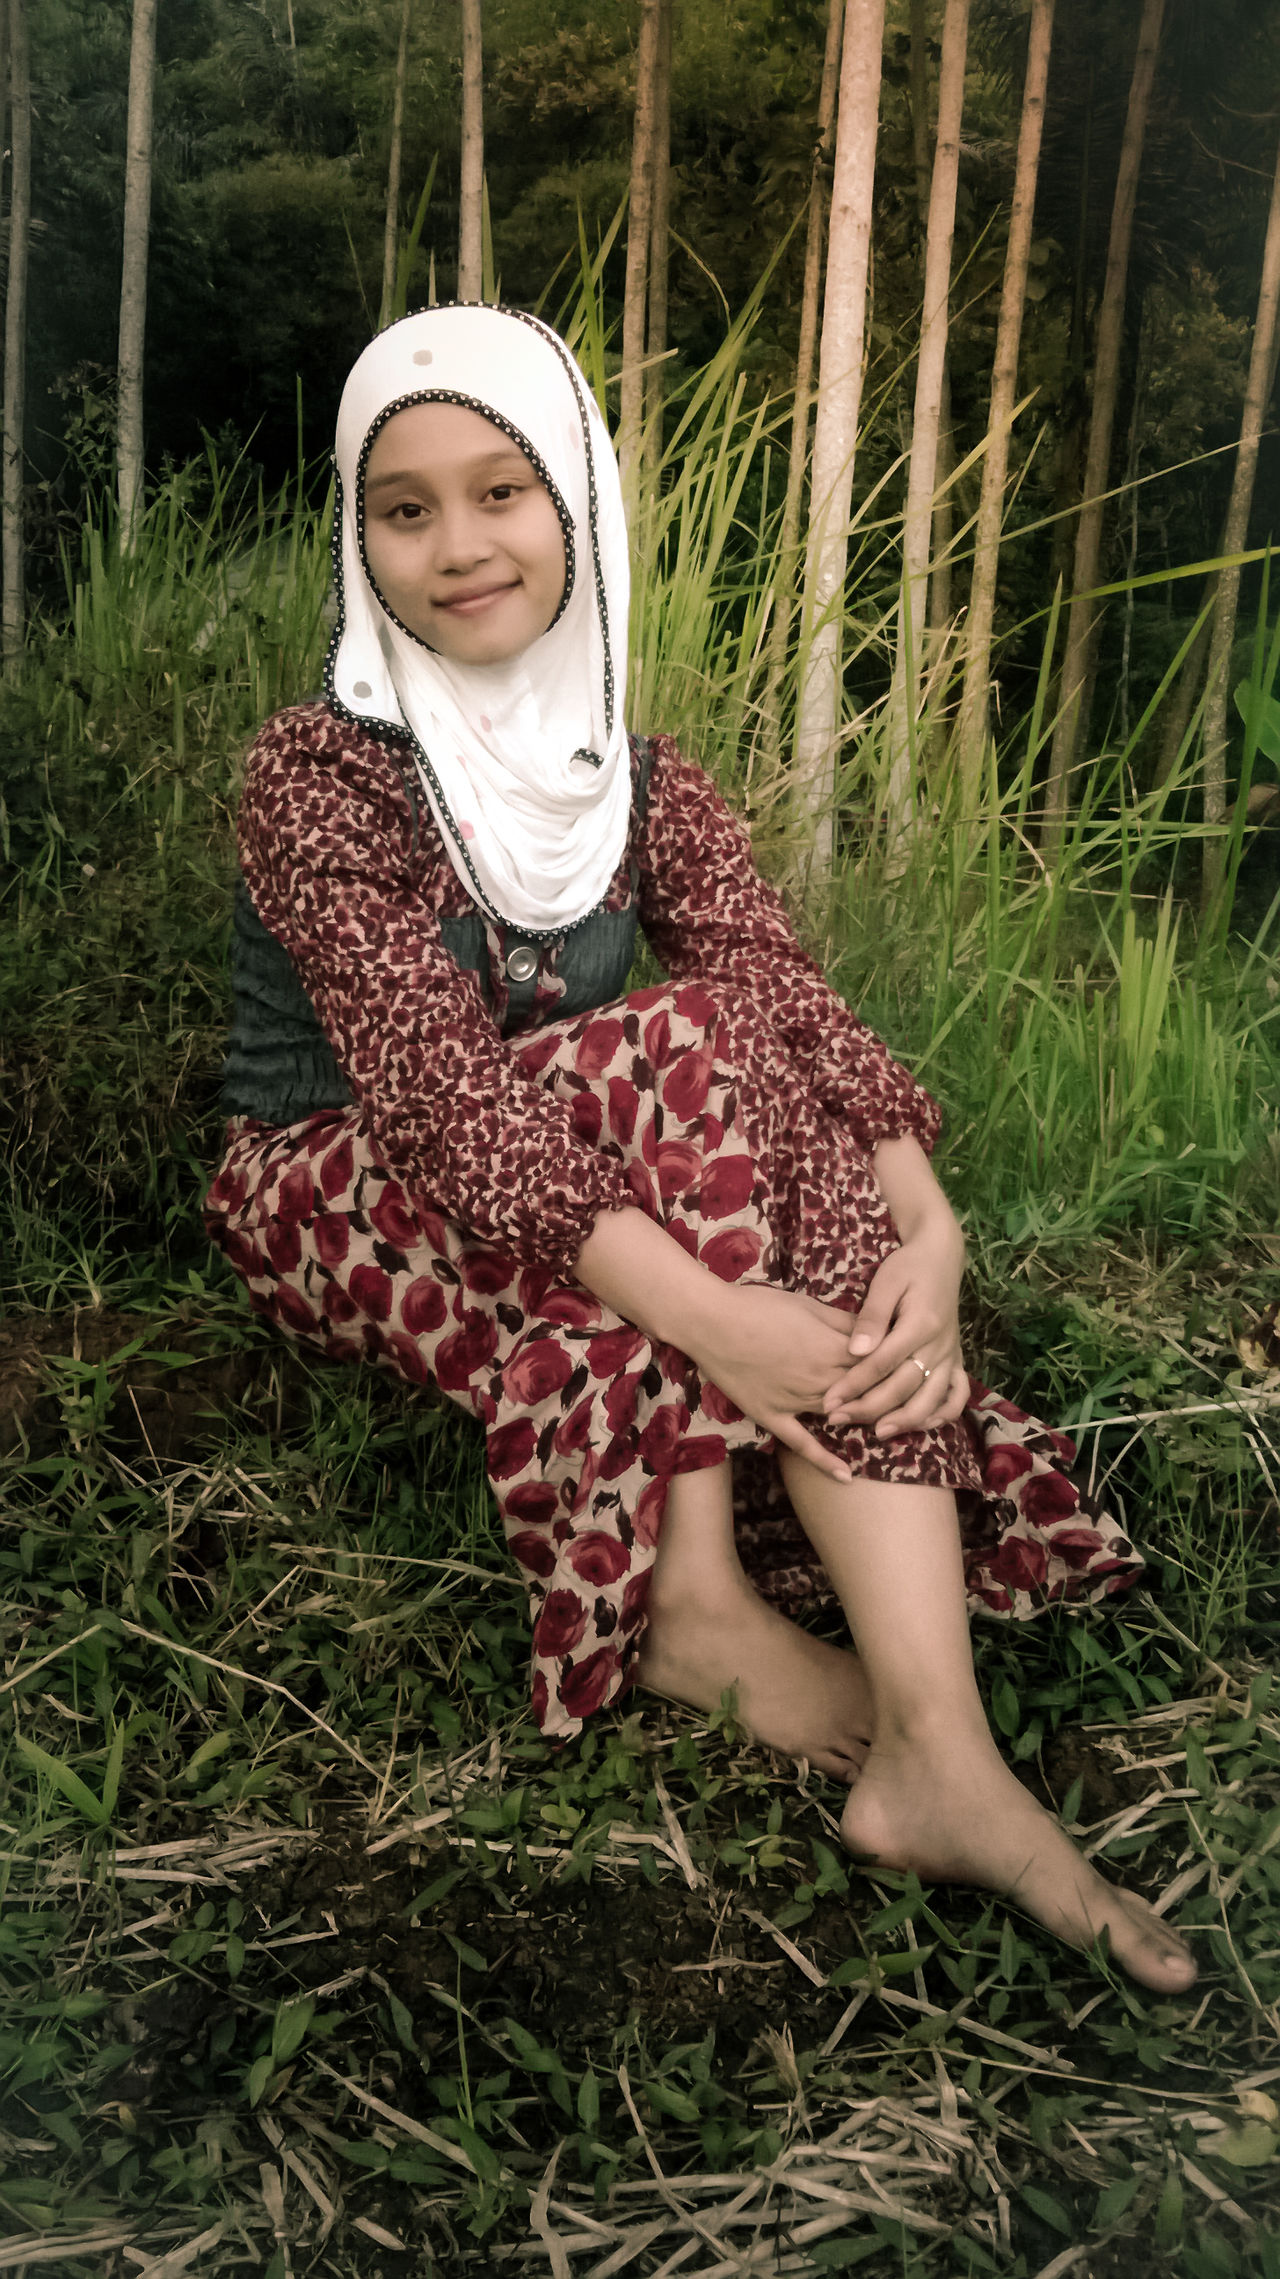 bogor Girl Village Natural Beauty Pure And Nature